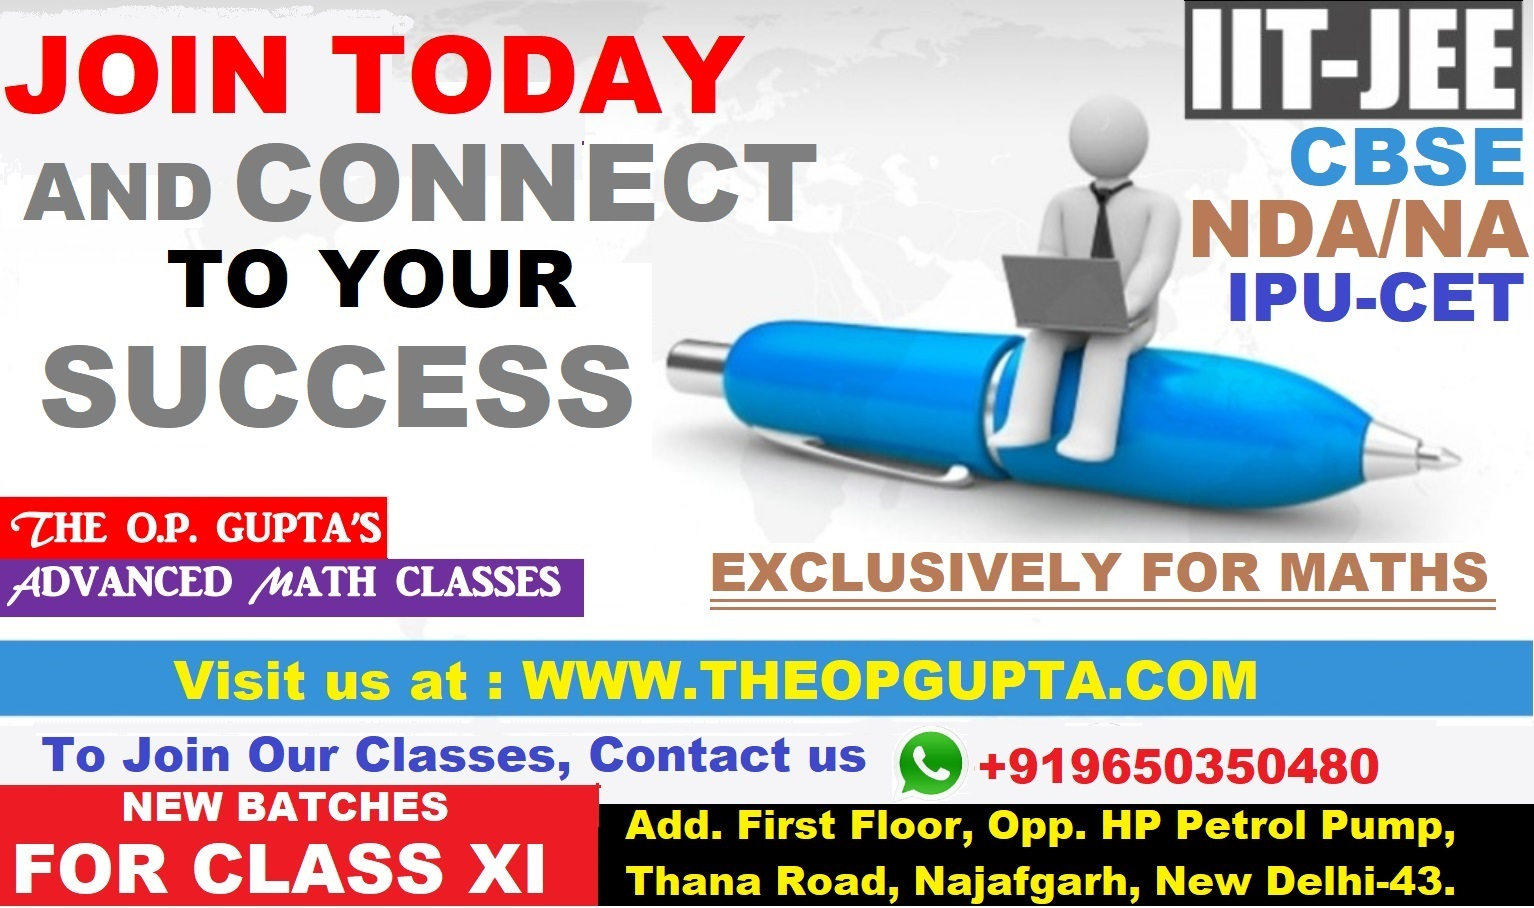 Maths Classes For XI By O.P. Gupta